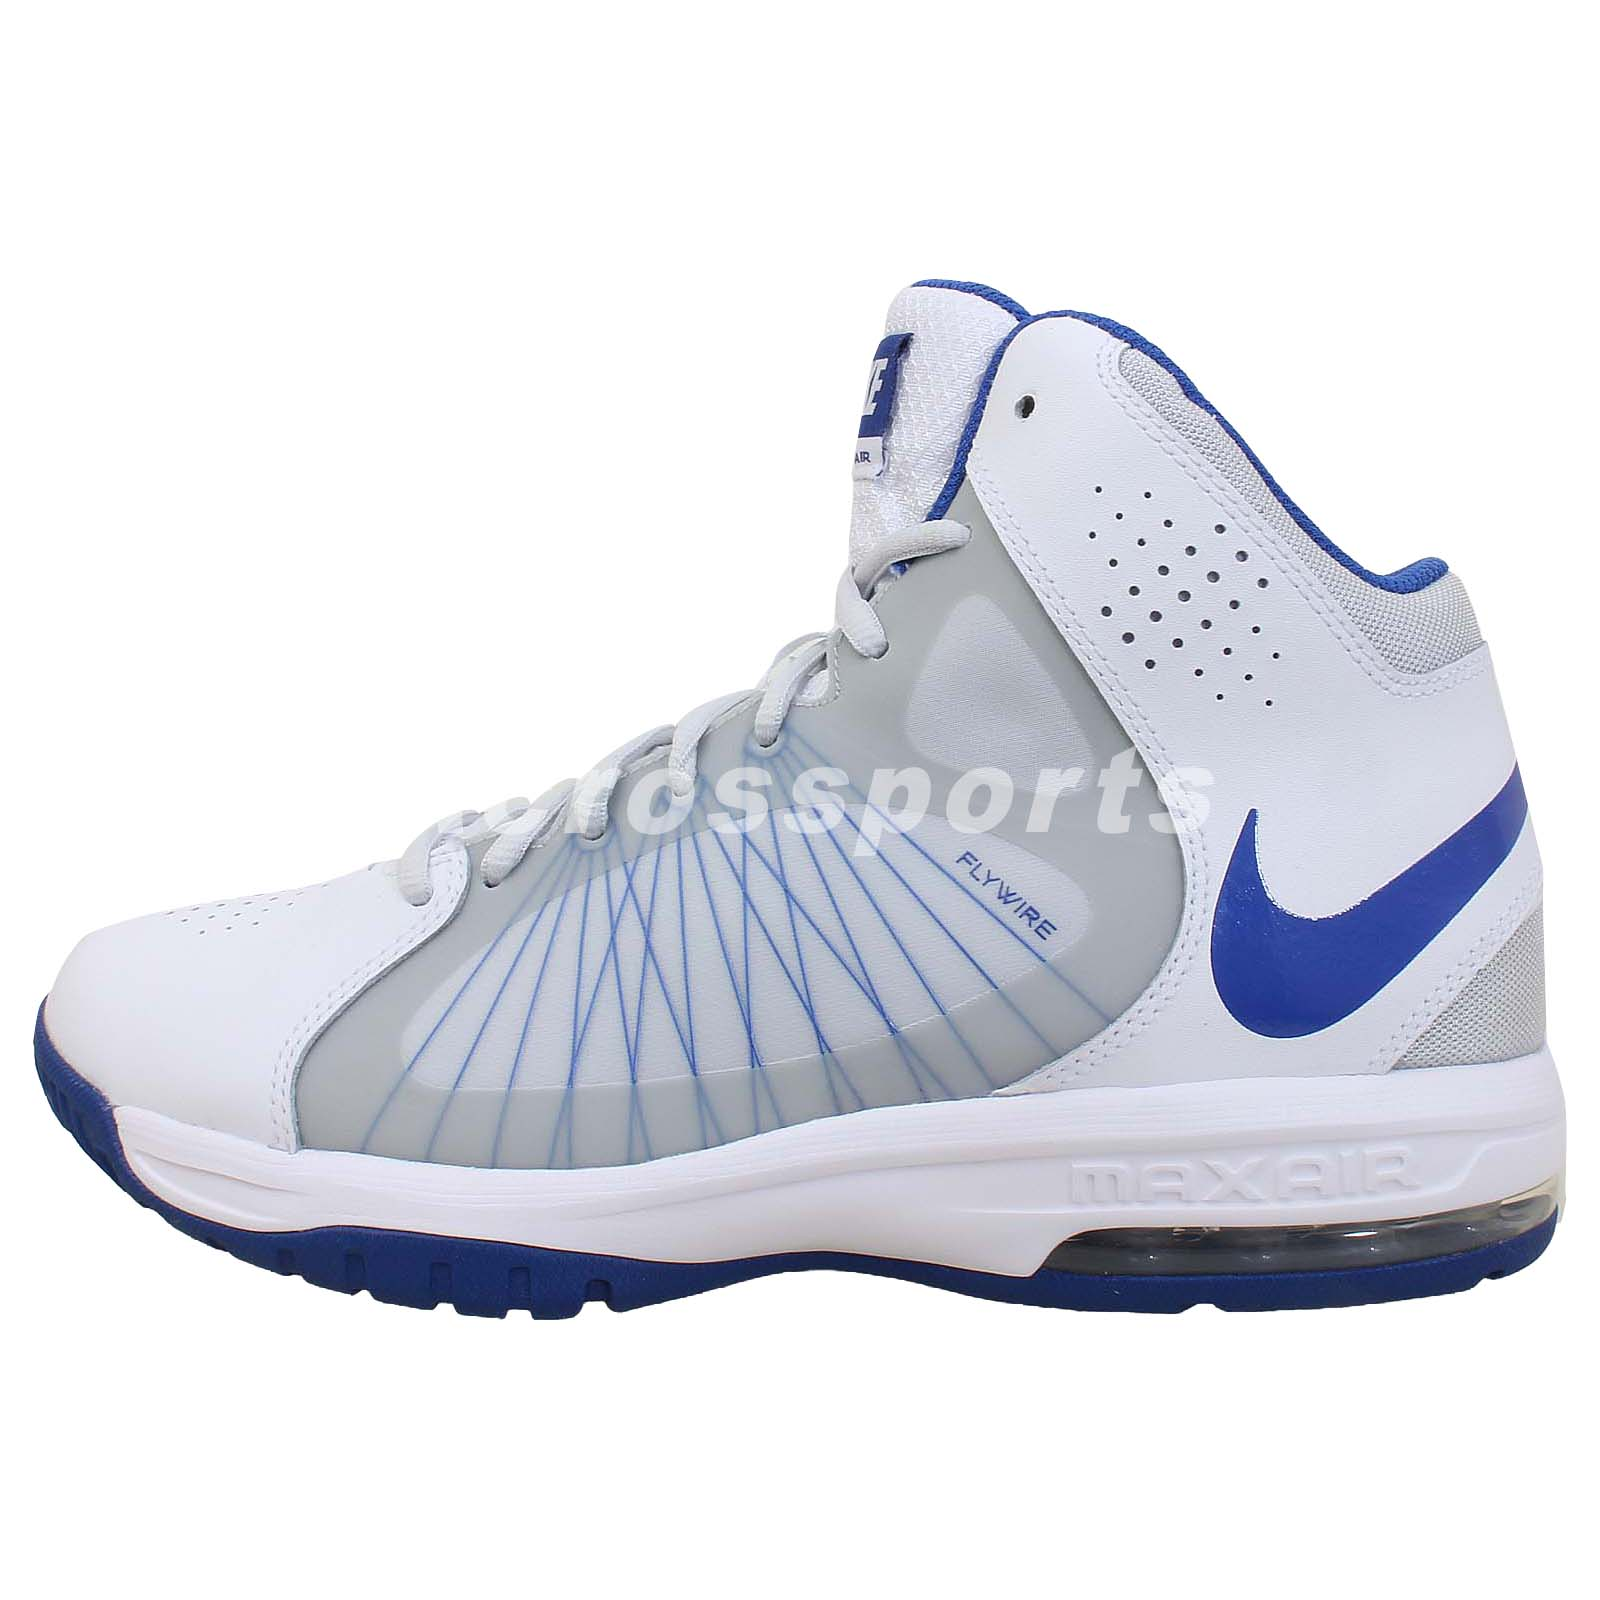 nike air max actualizer ii 2 white blue flywire 2014 mens basketball shoes ebay. Black Bedroom Furniture Sets. Home Design Ideas